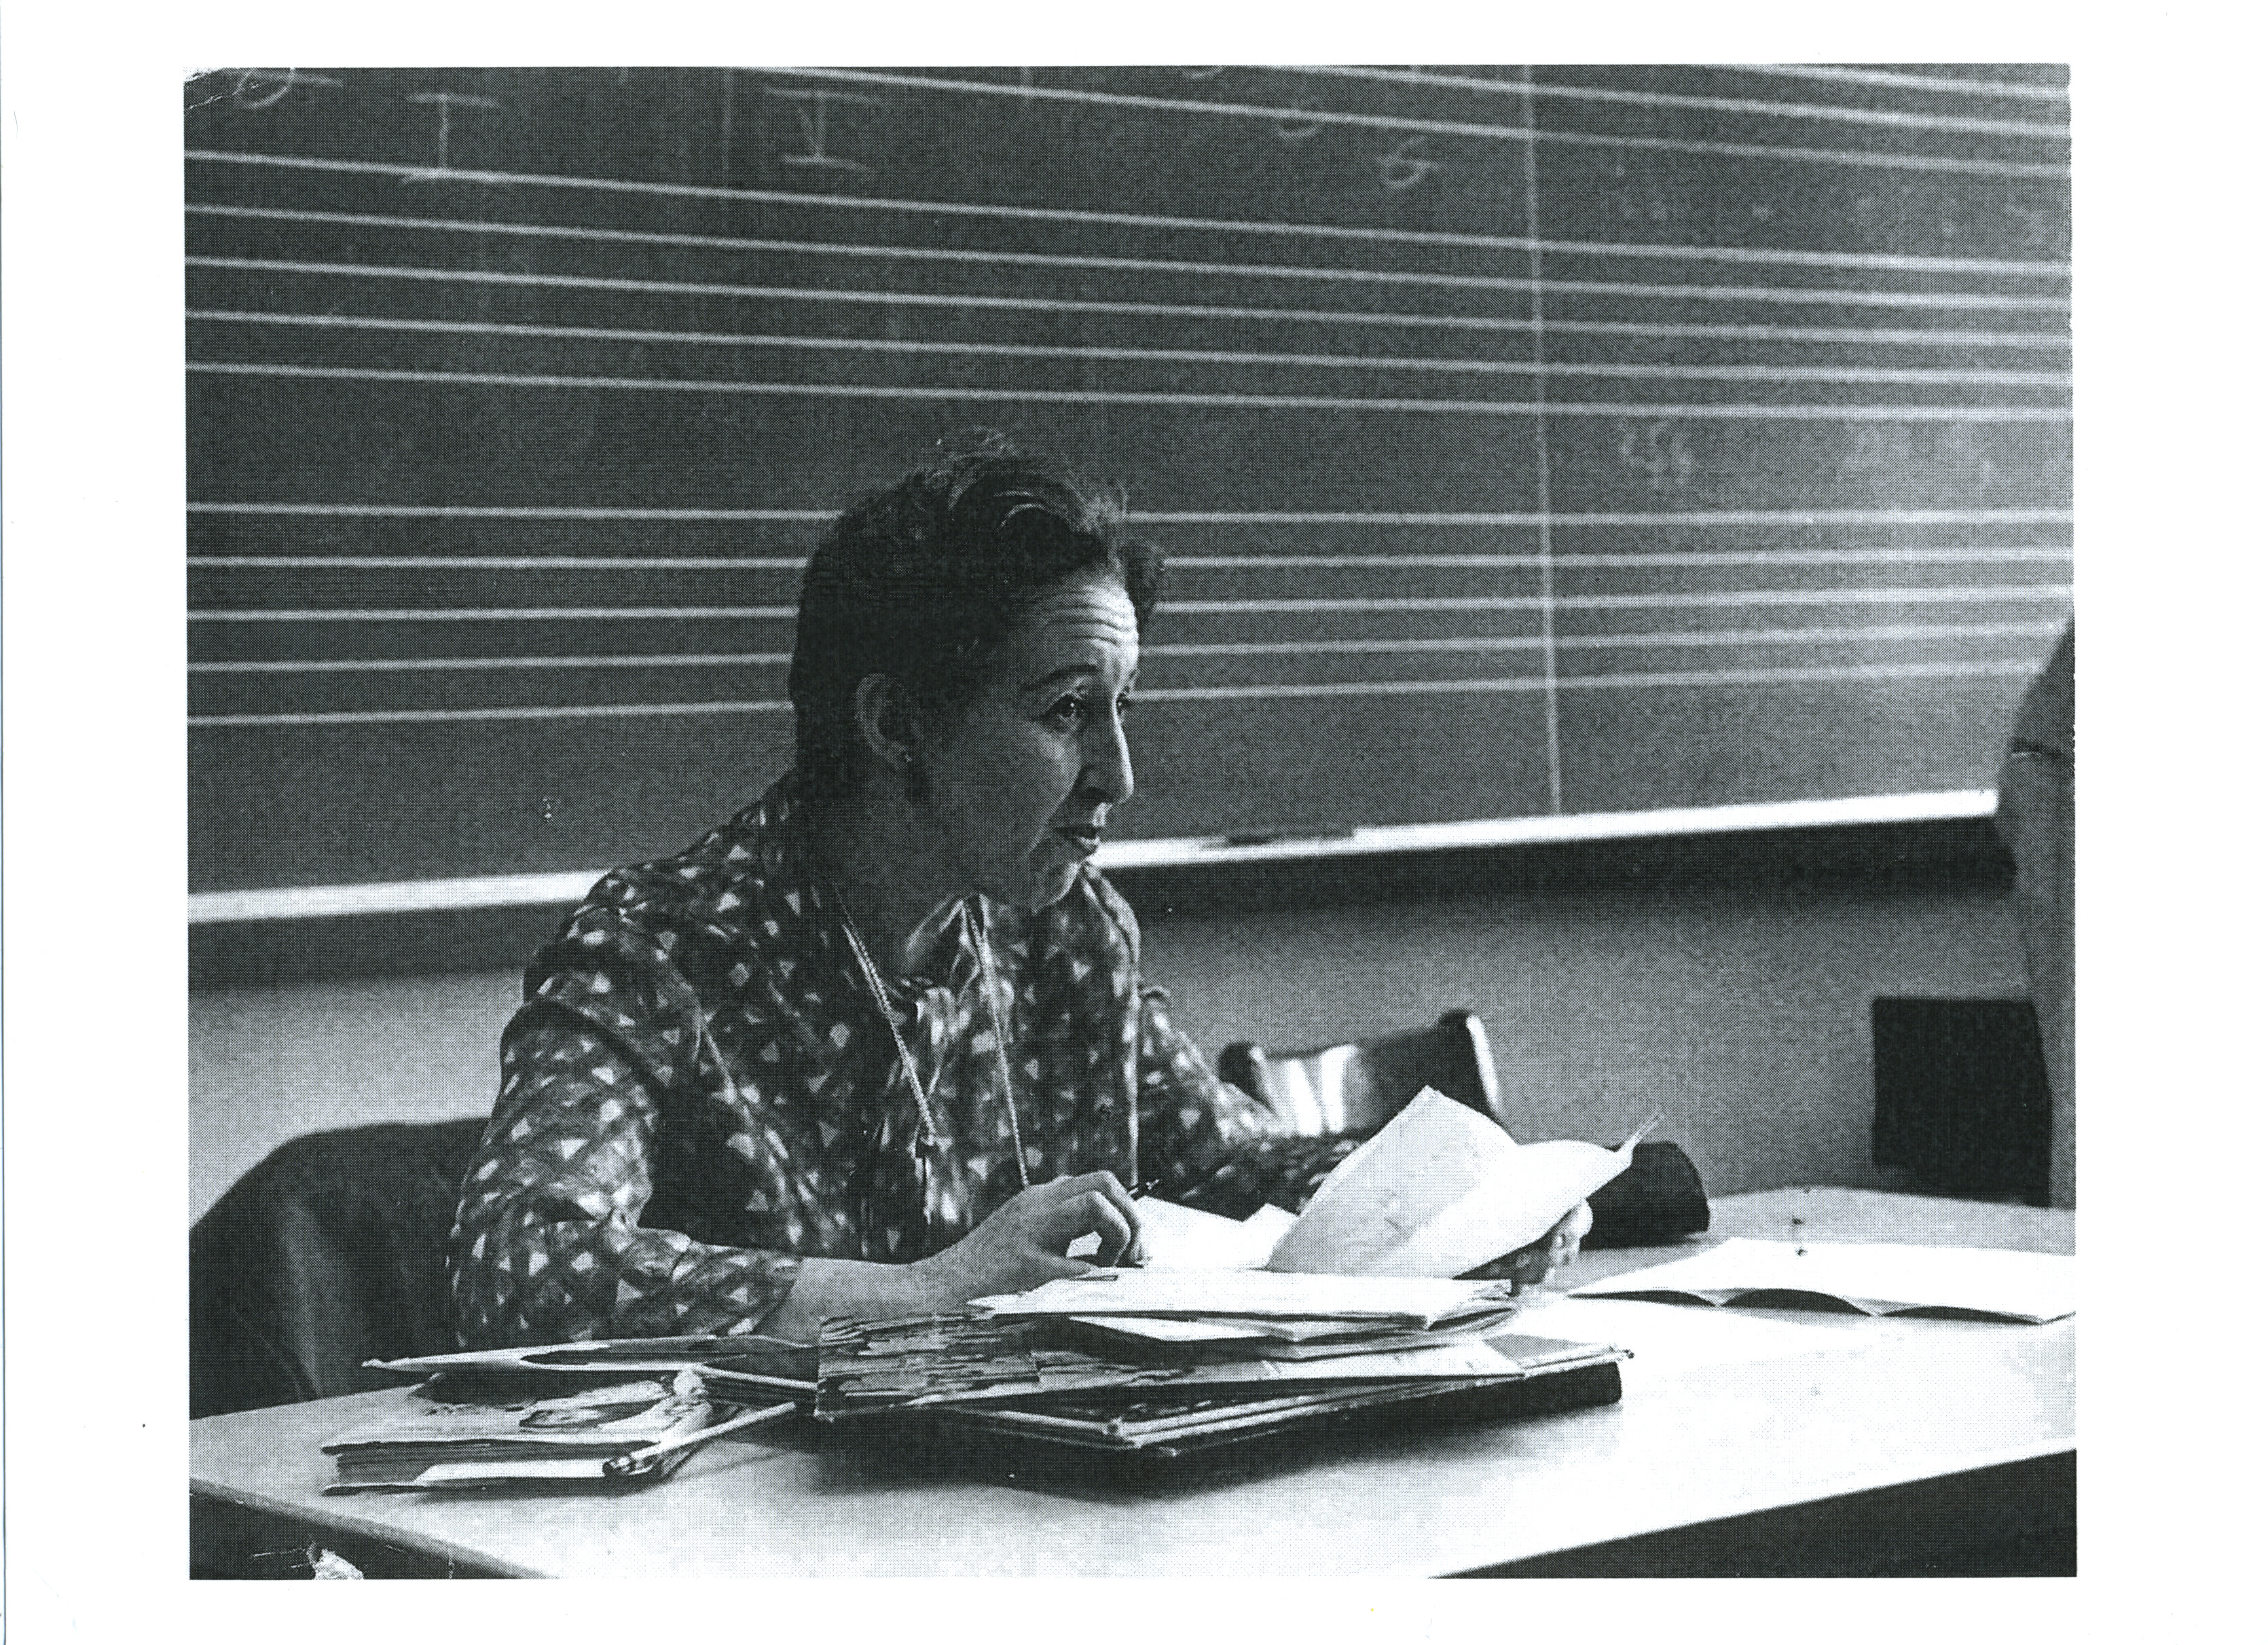 Henrietta Yurchenco teaching at City College 1970's